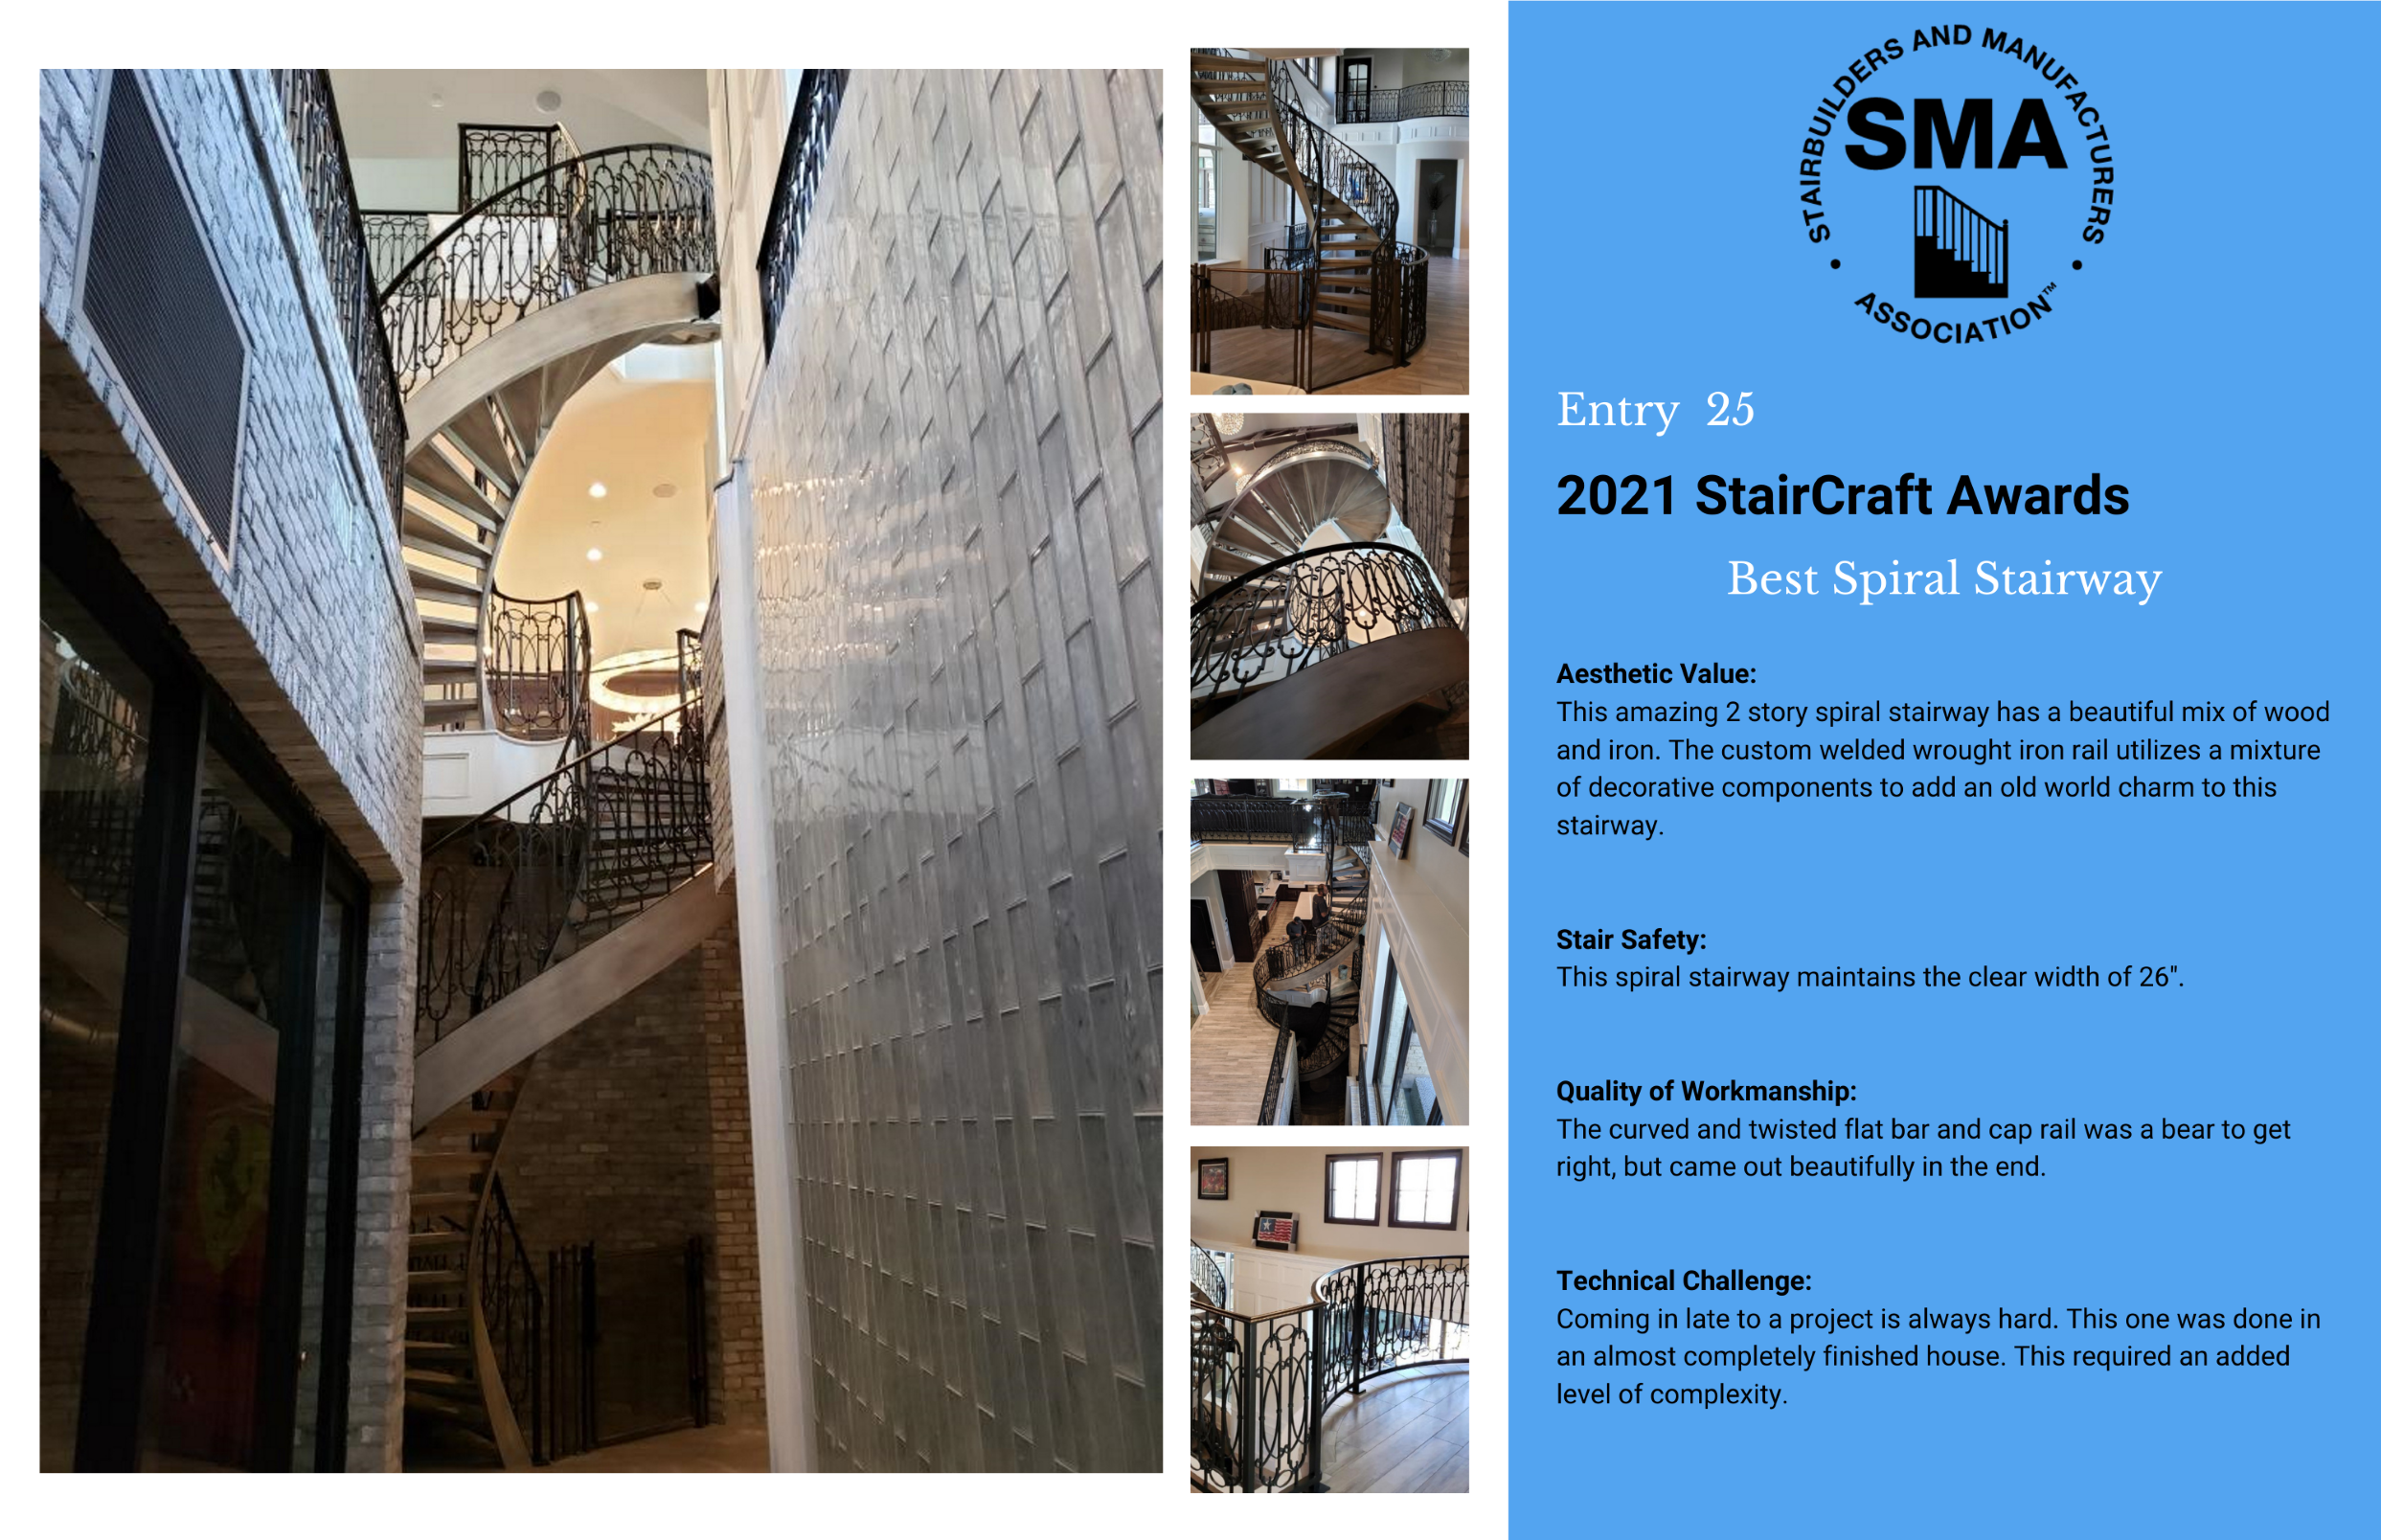 2021 StairCraft Awards Entry 25